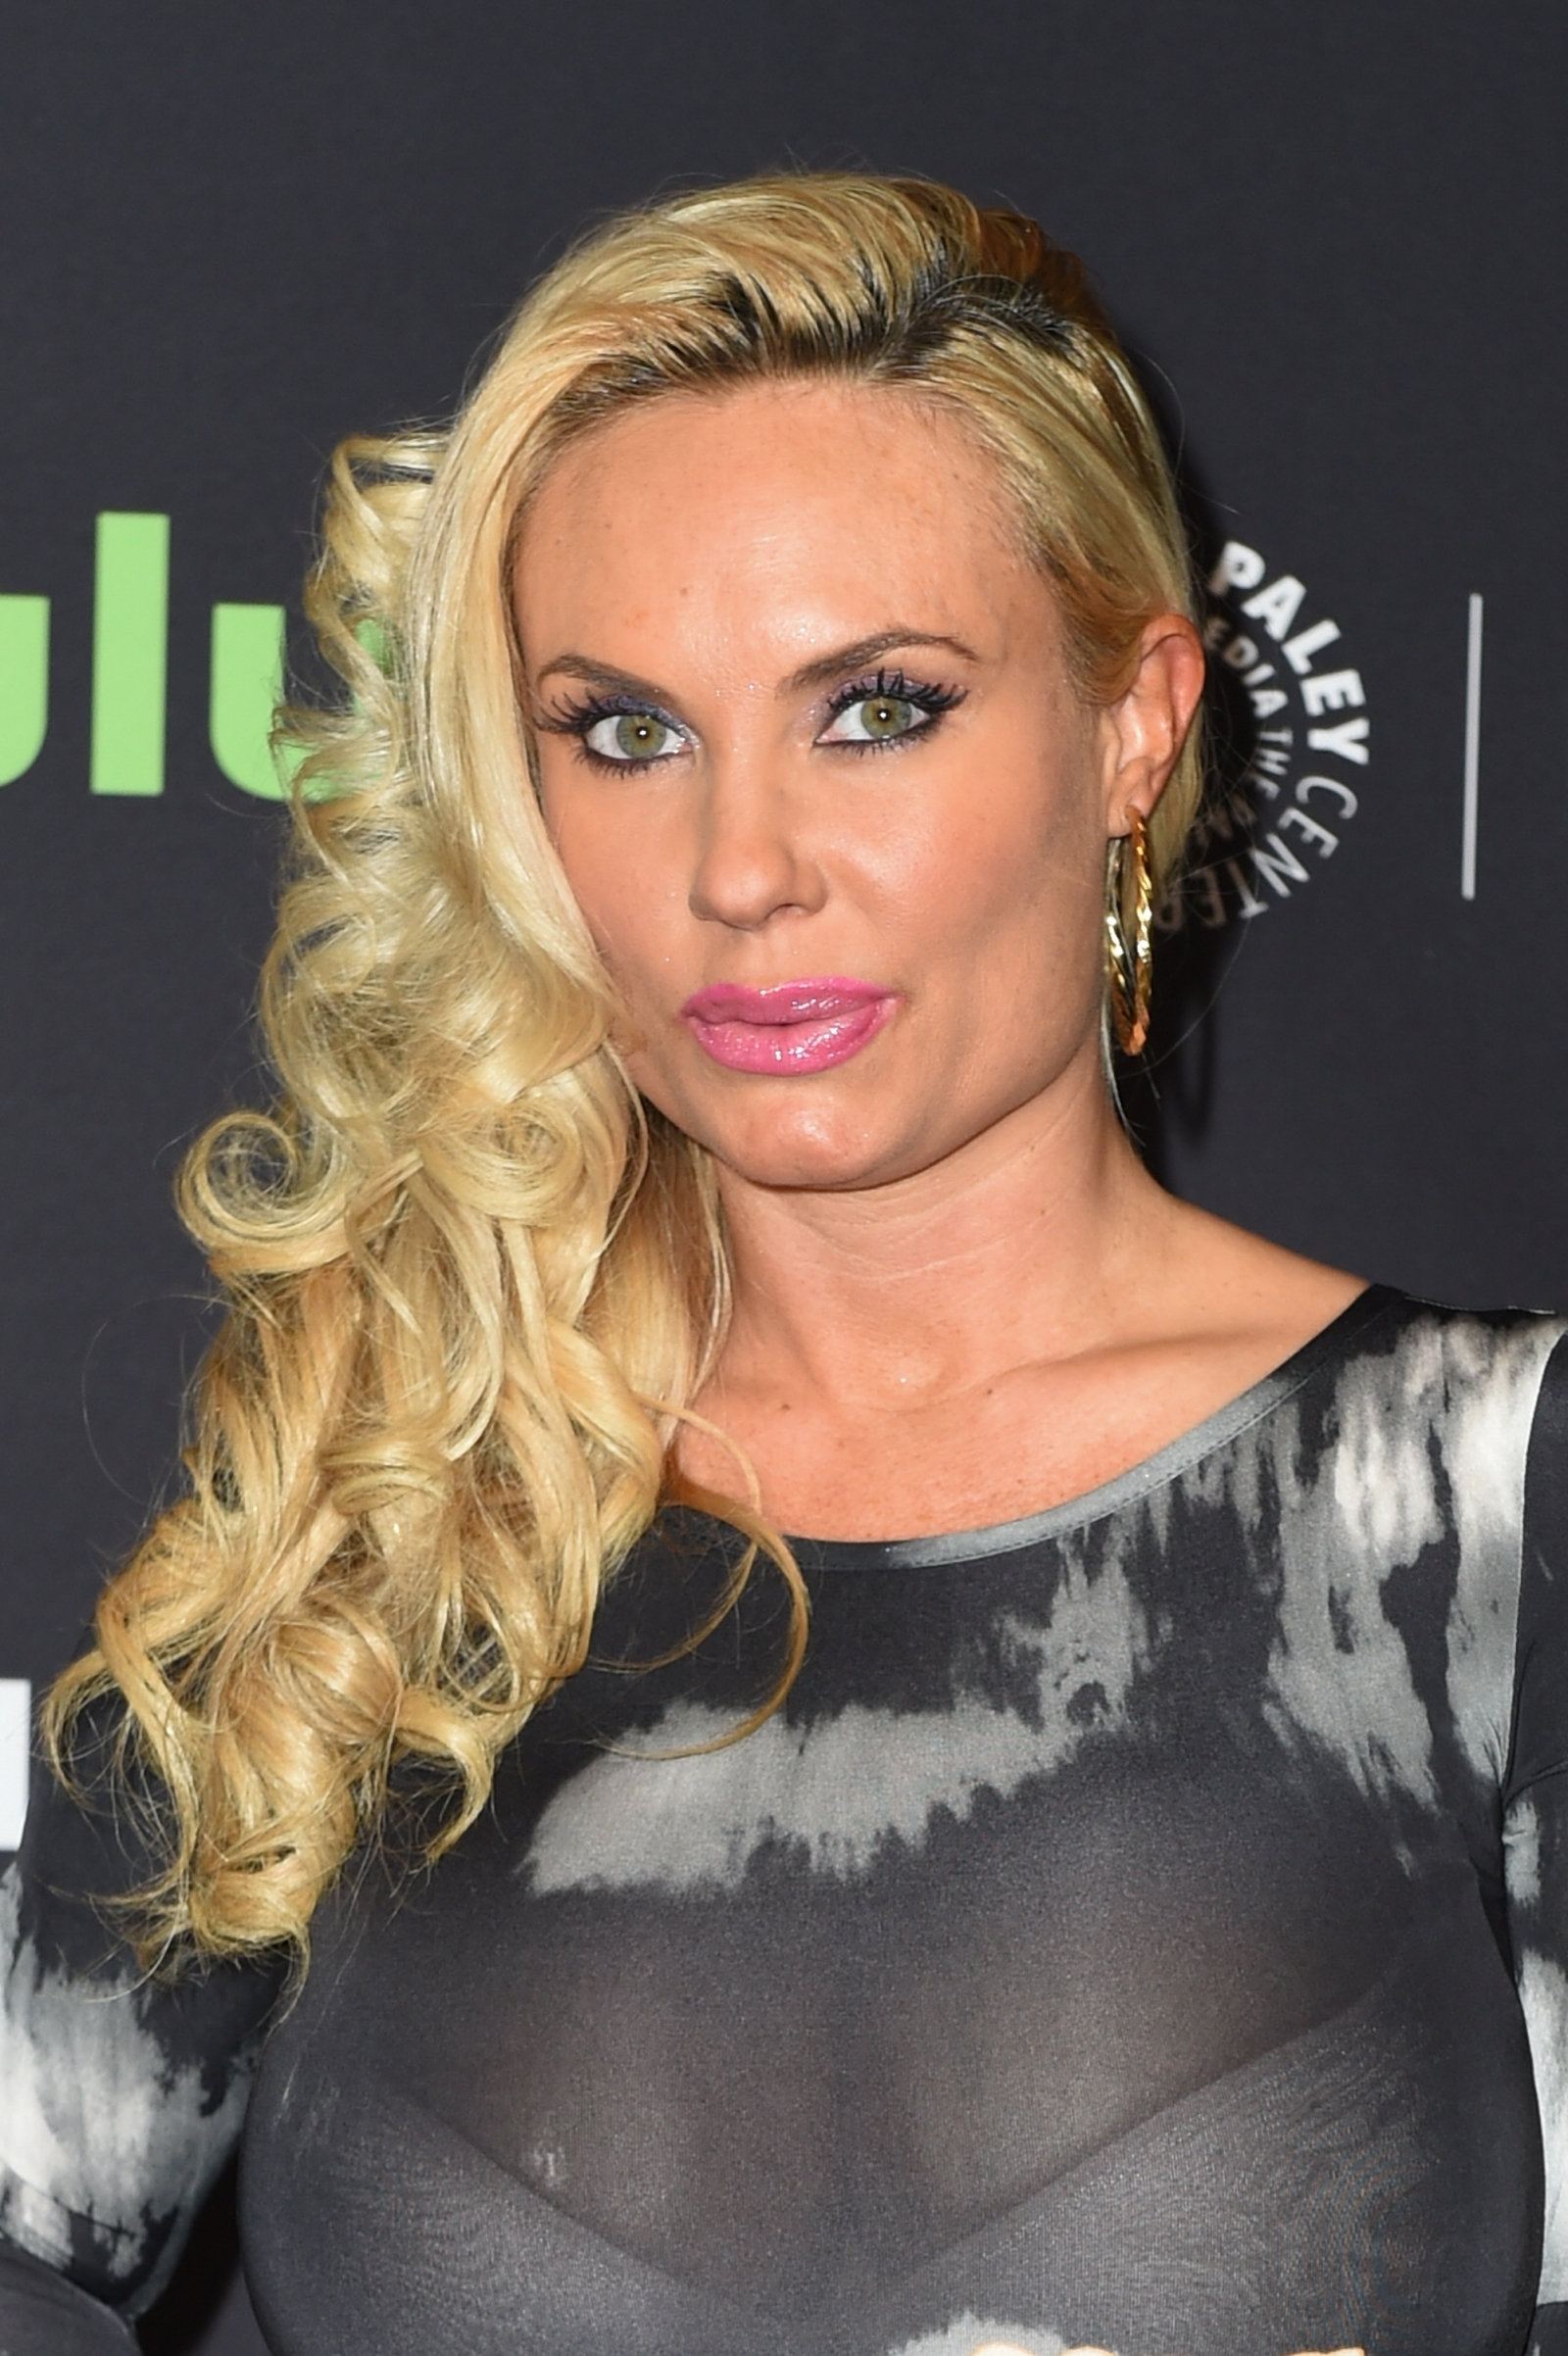 Coco Austin nude (51 photos), Topless, Hot, Selfie, cleavage 2018